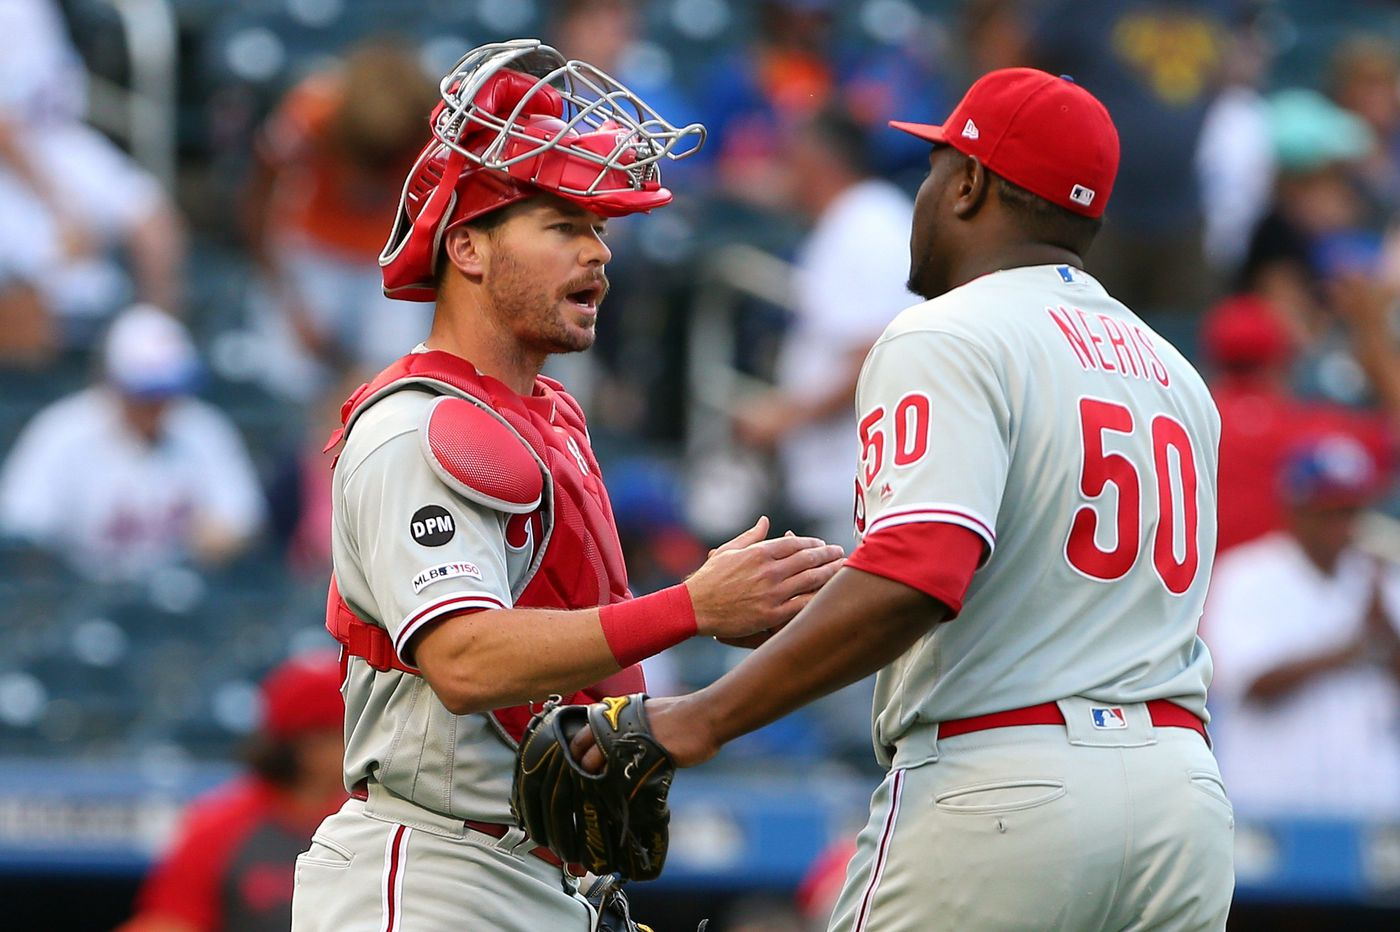 Phillies' exhausting win over the Mets keeps them locked in the wild-card race | Bob Brookover